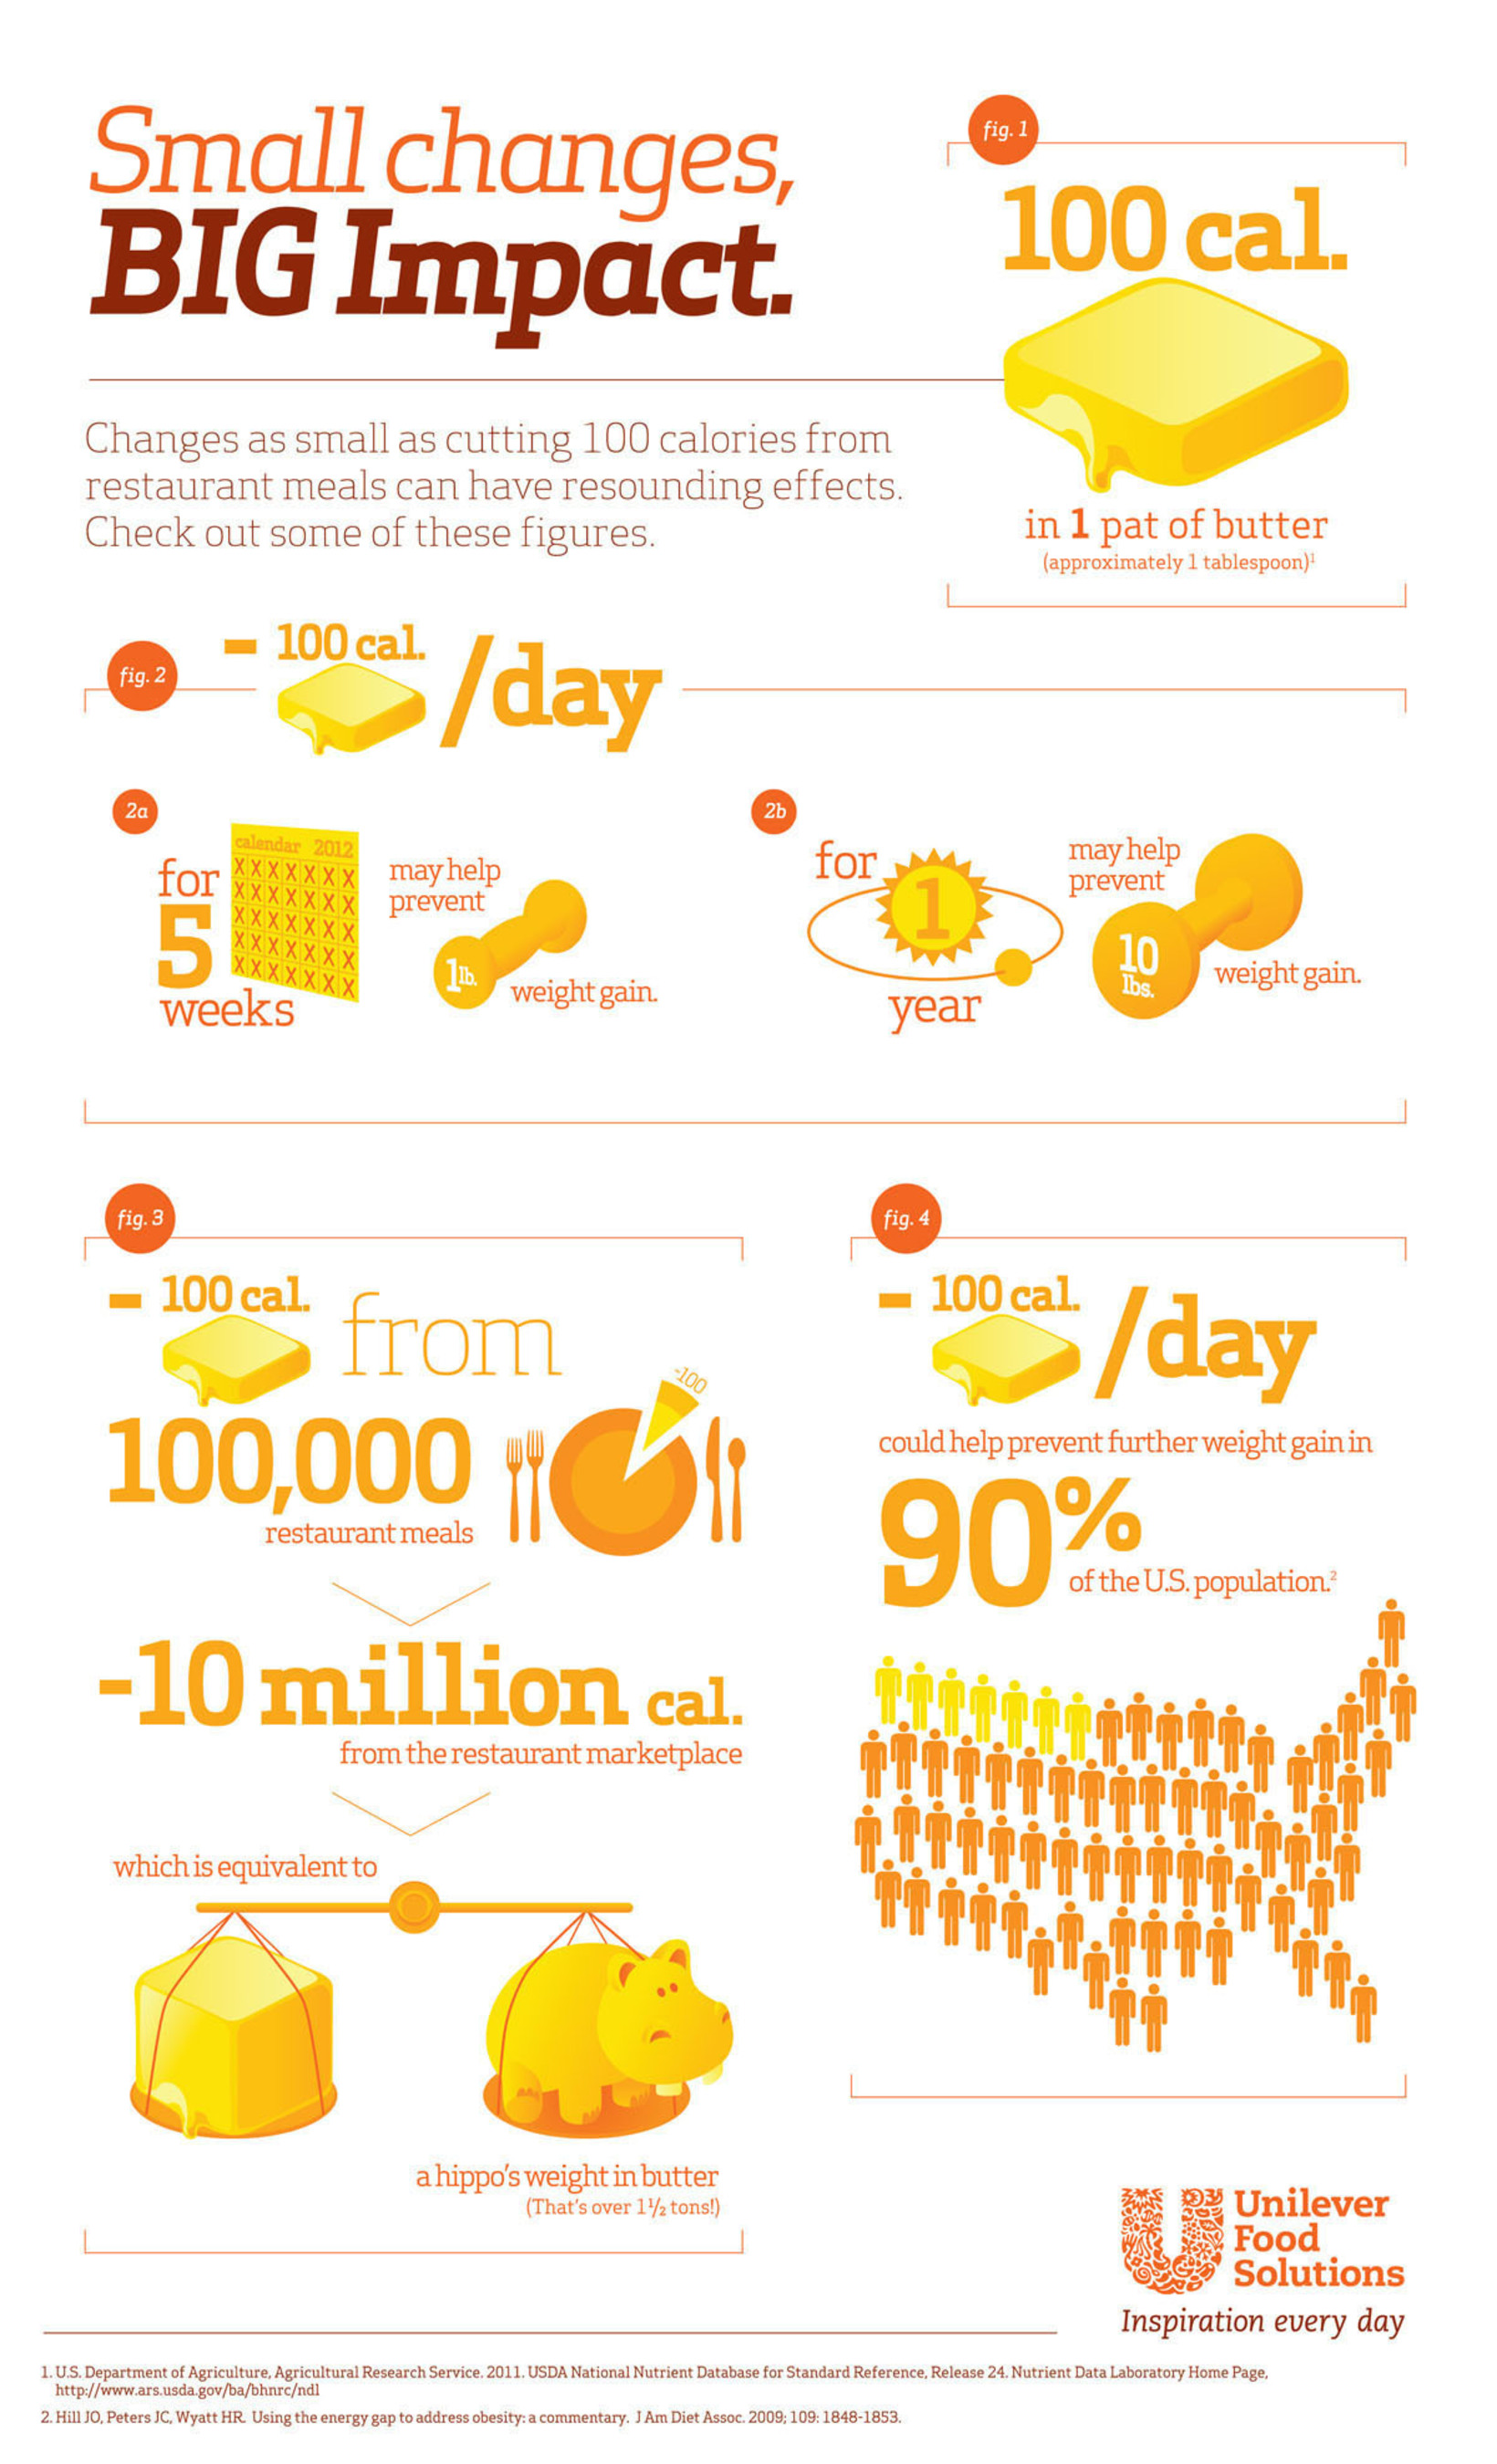 Unilever Food Solutions Asks Food Service Operators to Join in Goal to Eliminate 10 Million